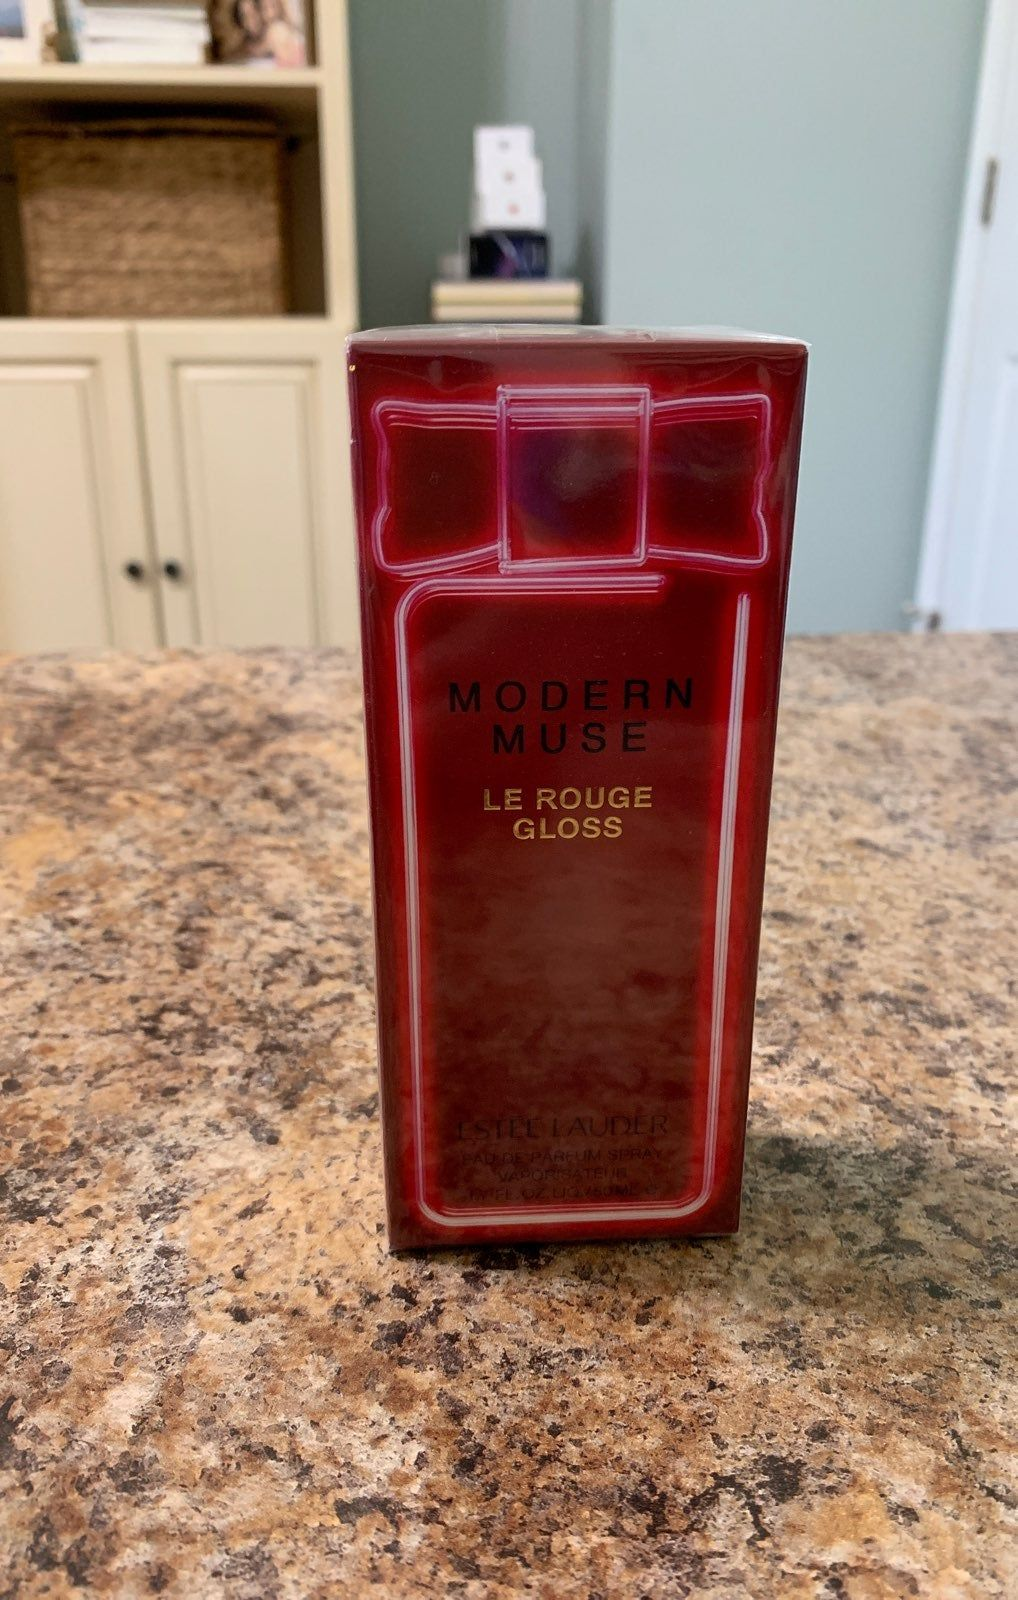 Brand New Sealed In Plastic 1 7 Oz Estee Lauder Modern Muse Modern Muse Le Rouge Gloss Modern Muse Perfume